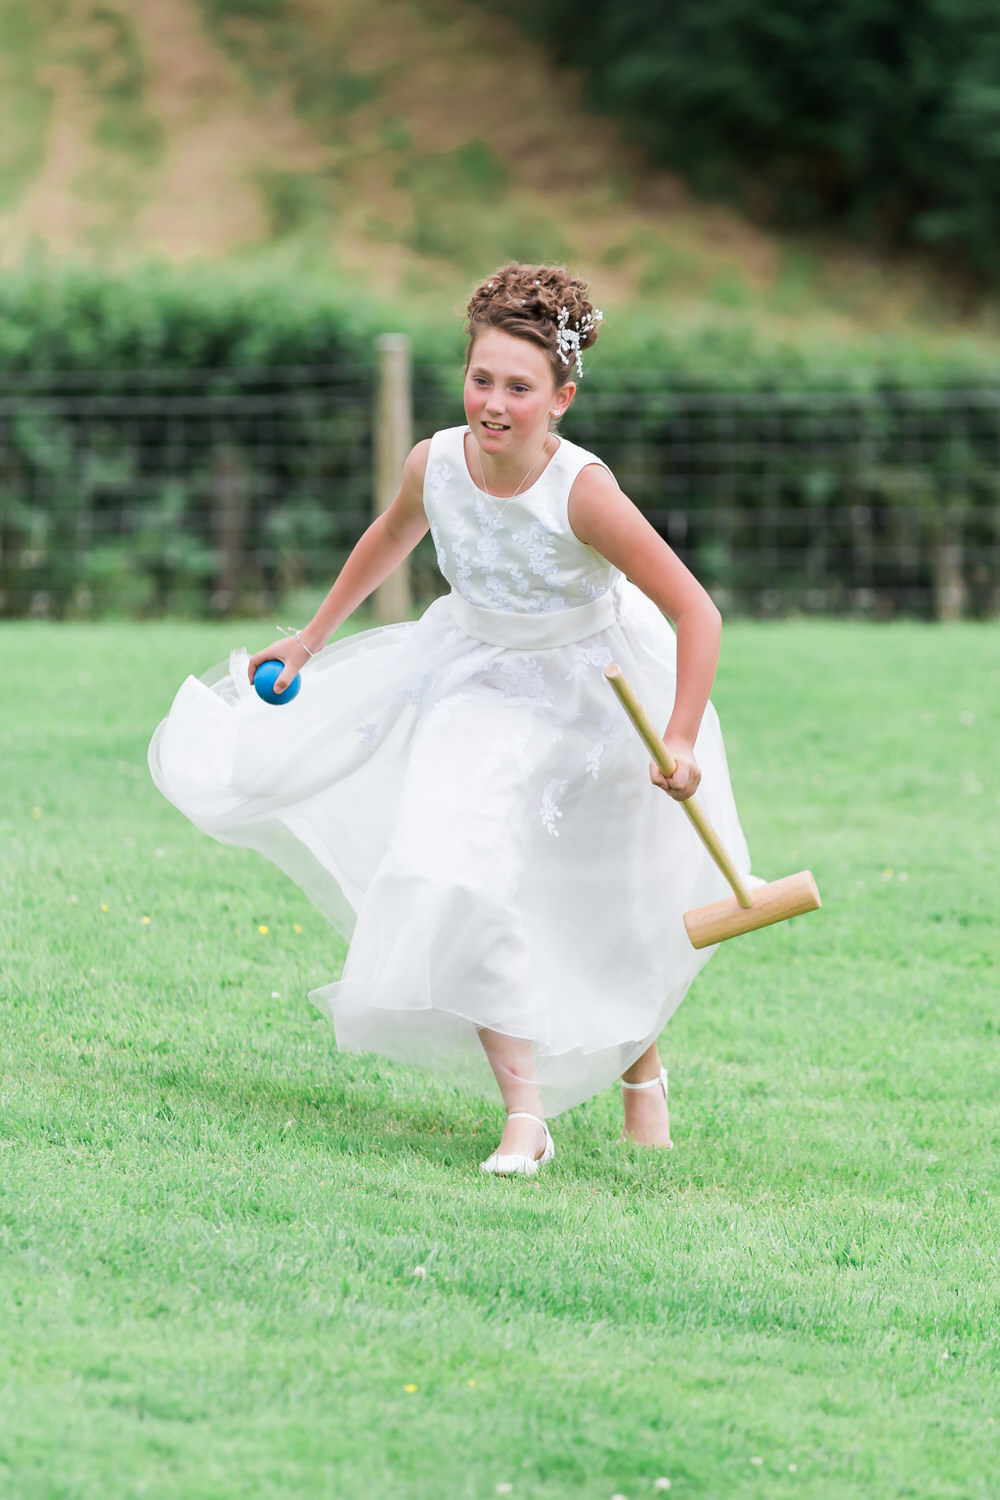 Special-Day-Photography-The-Bringewood-Ludlow-The-Bringewood-Hillside-Wedding-flower-girl-playing-lawn-games.jpg